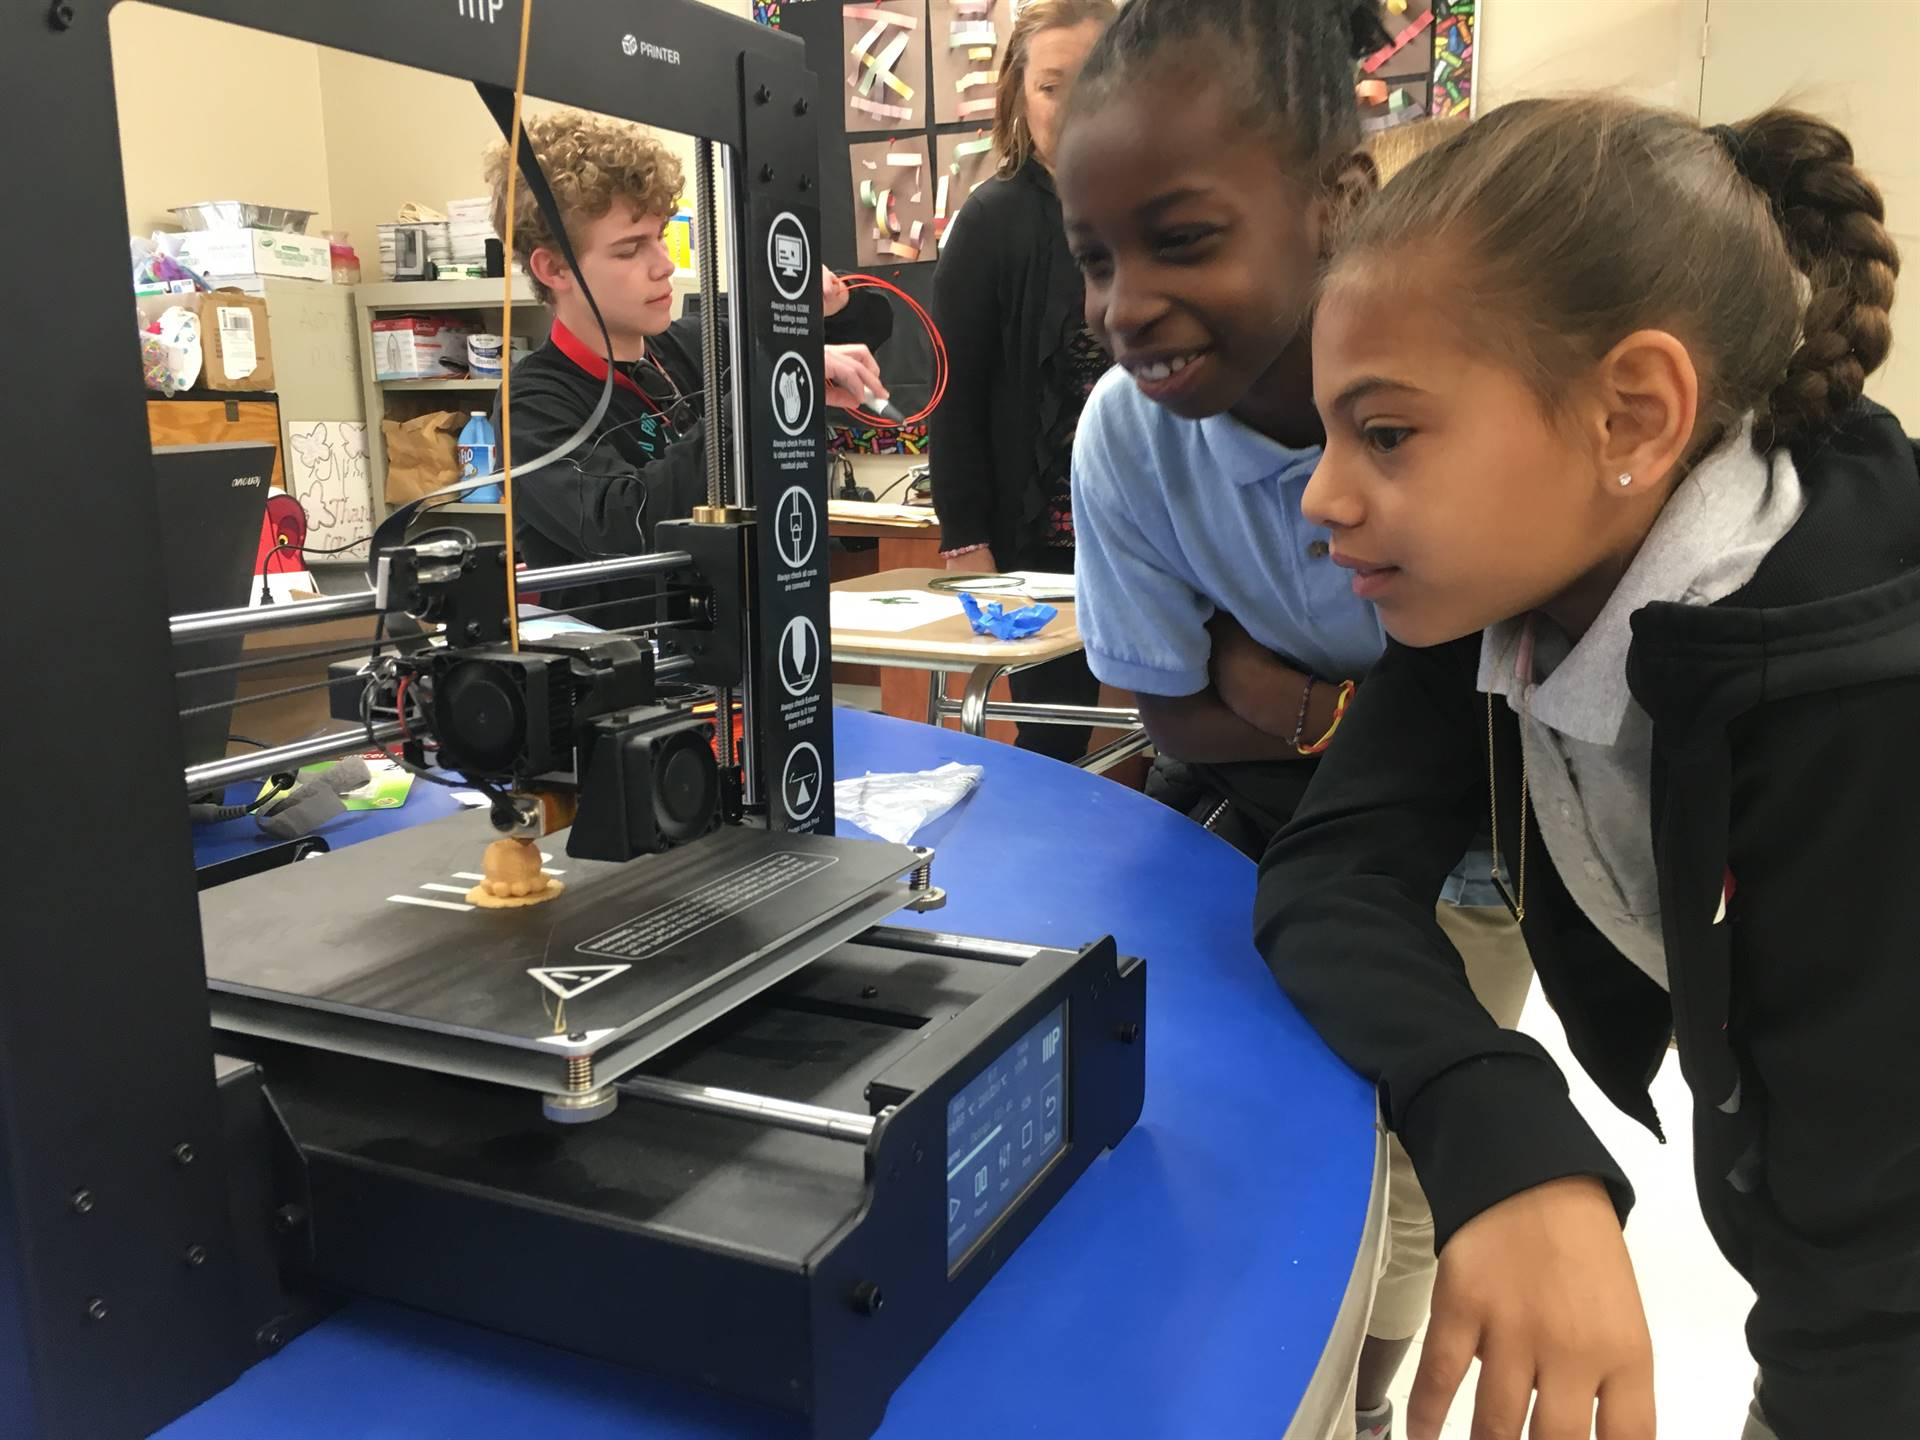 Students watch a 3D printer